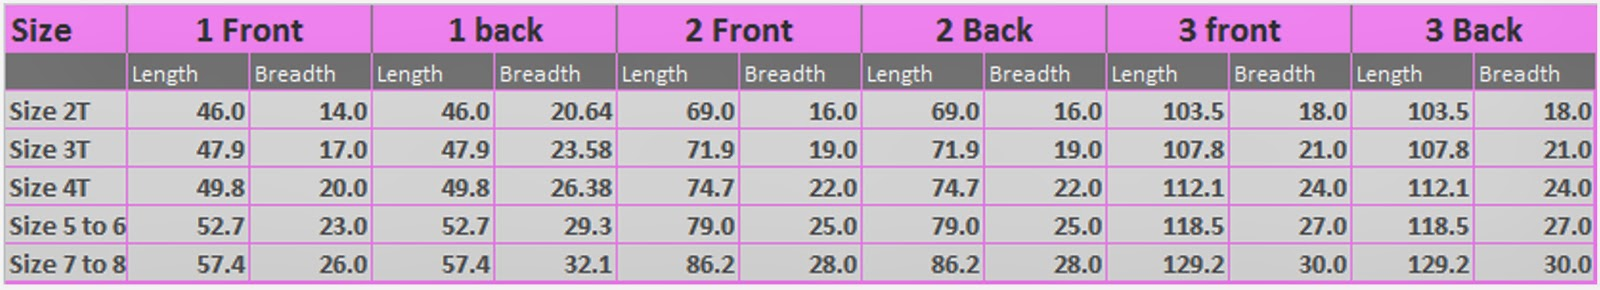 Fabric cutting measurements for dress